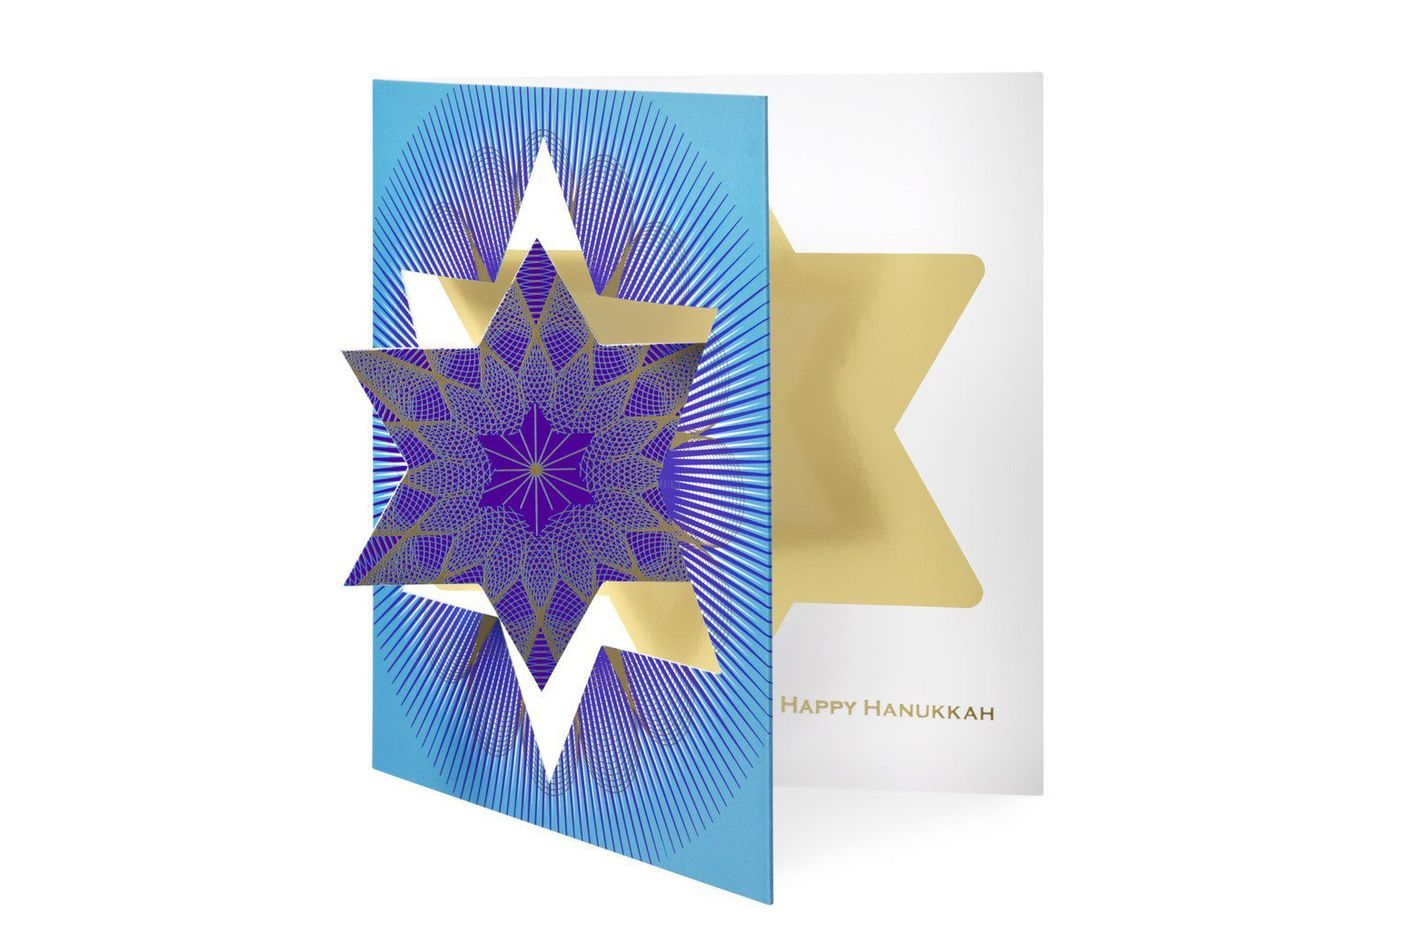 Masha D'yans Hannukah Star Cards From the MoMA Collection